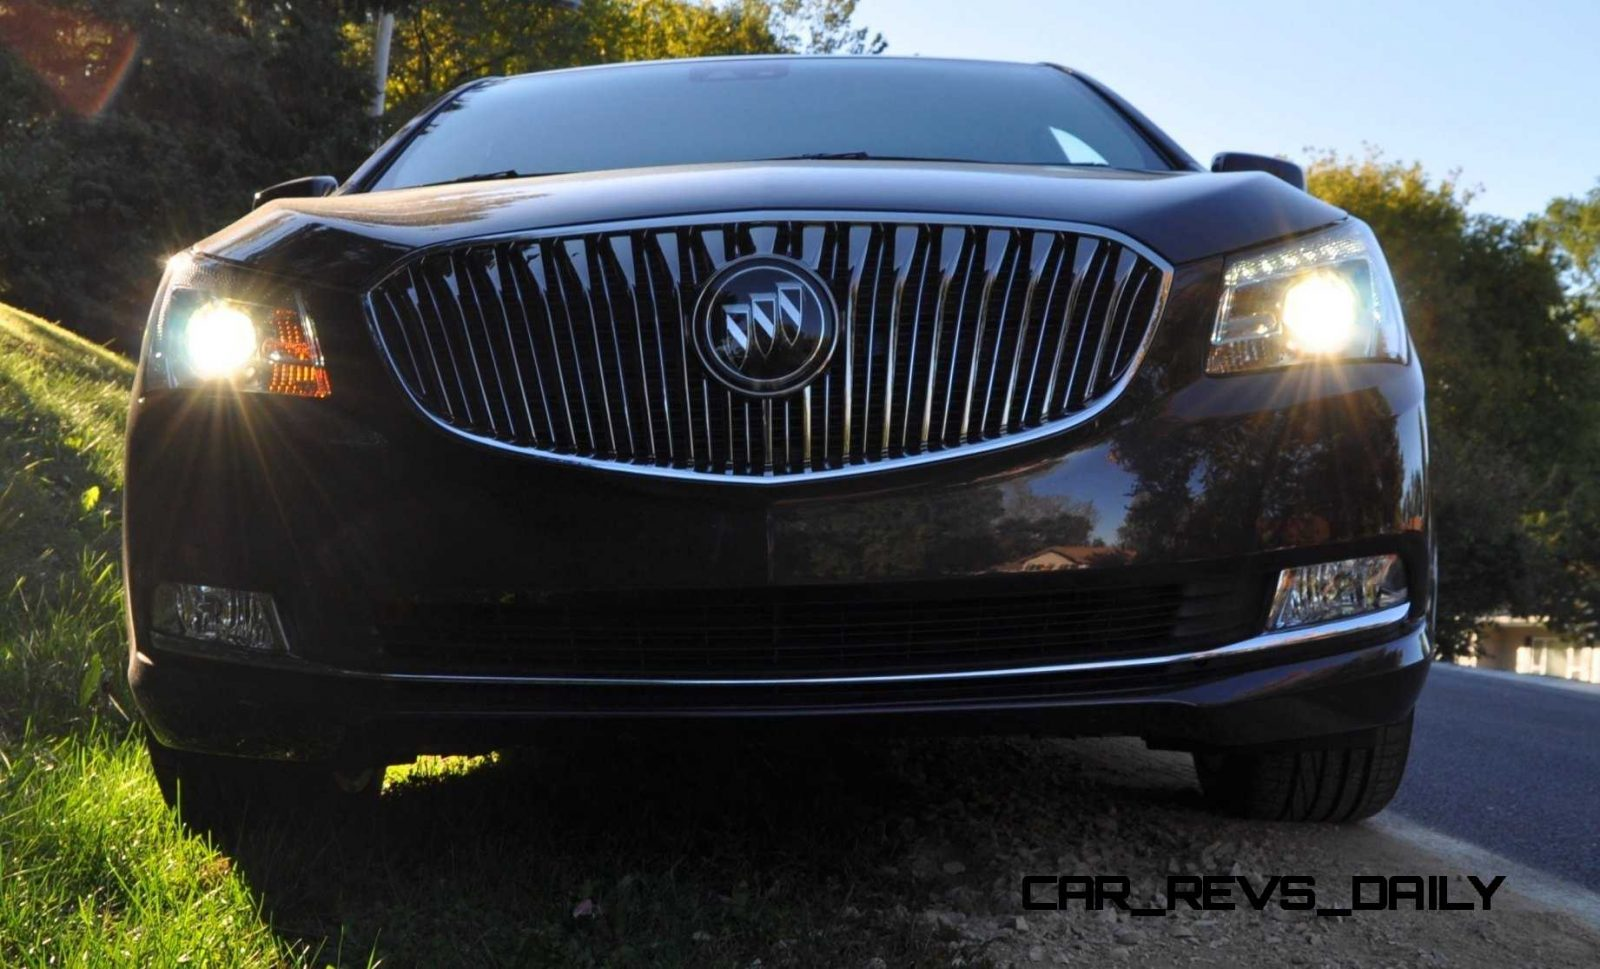 Driven Car Review - 2014 Buick LaCrosse Is Huge, Smooth and Silent38